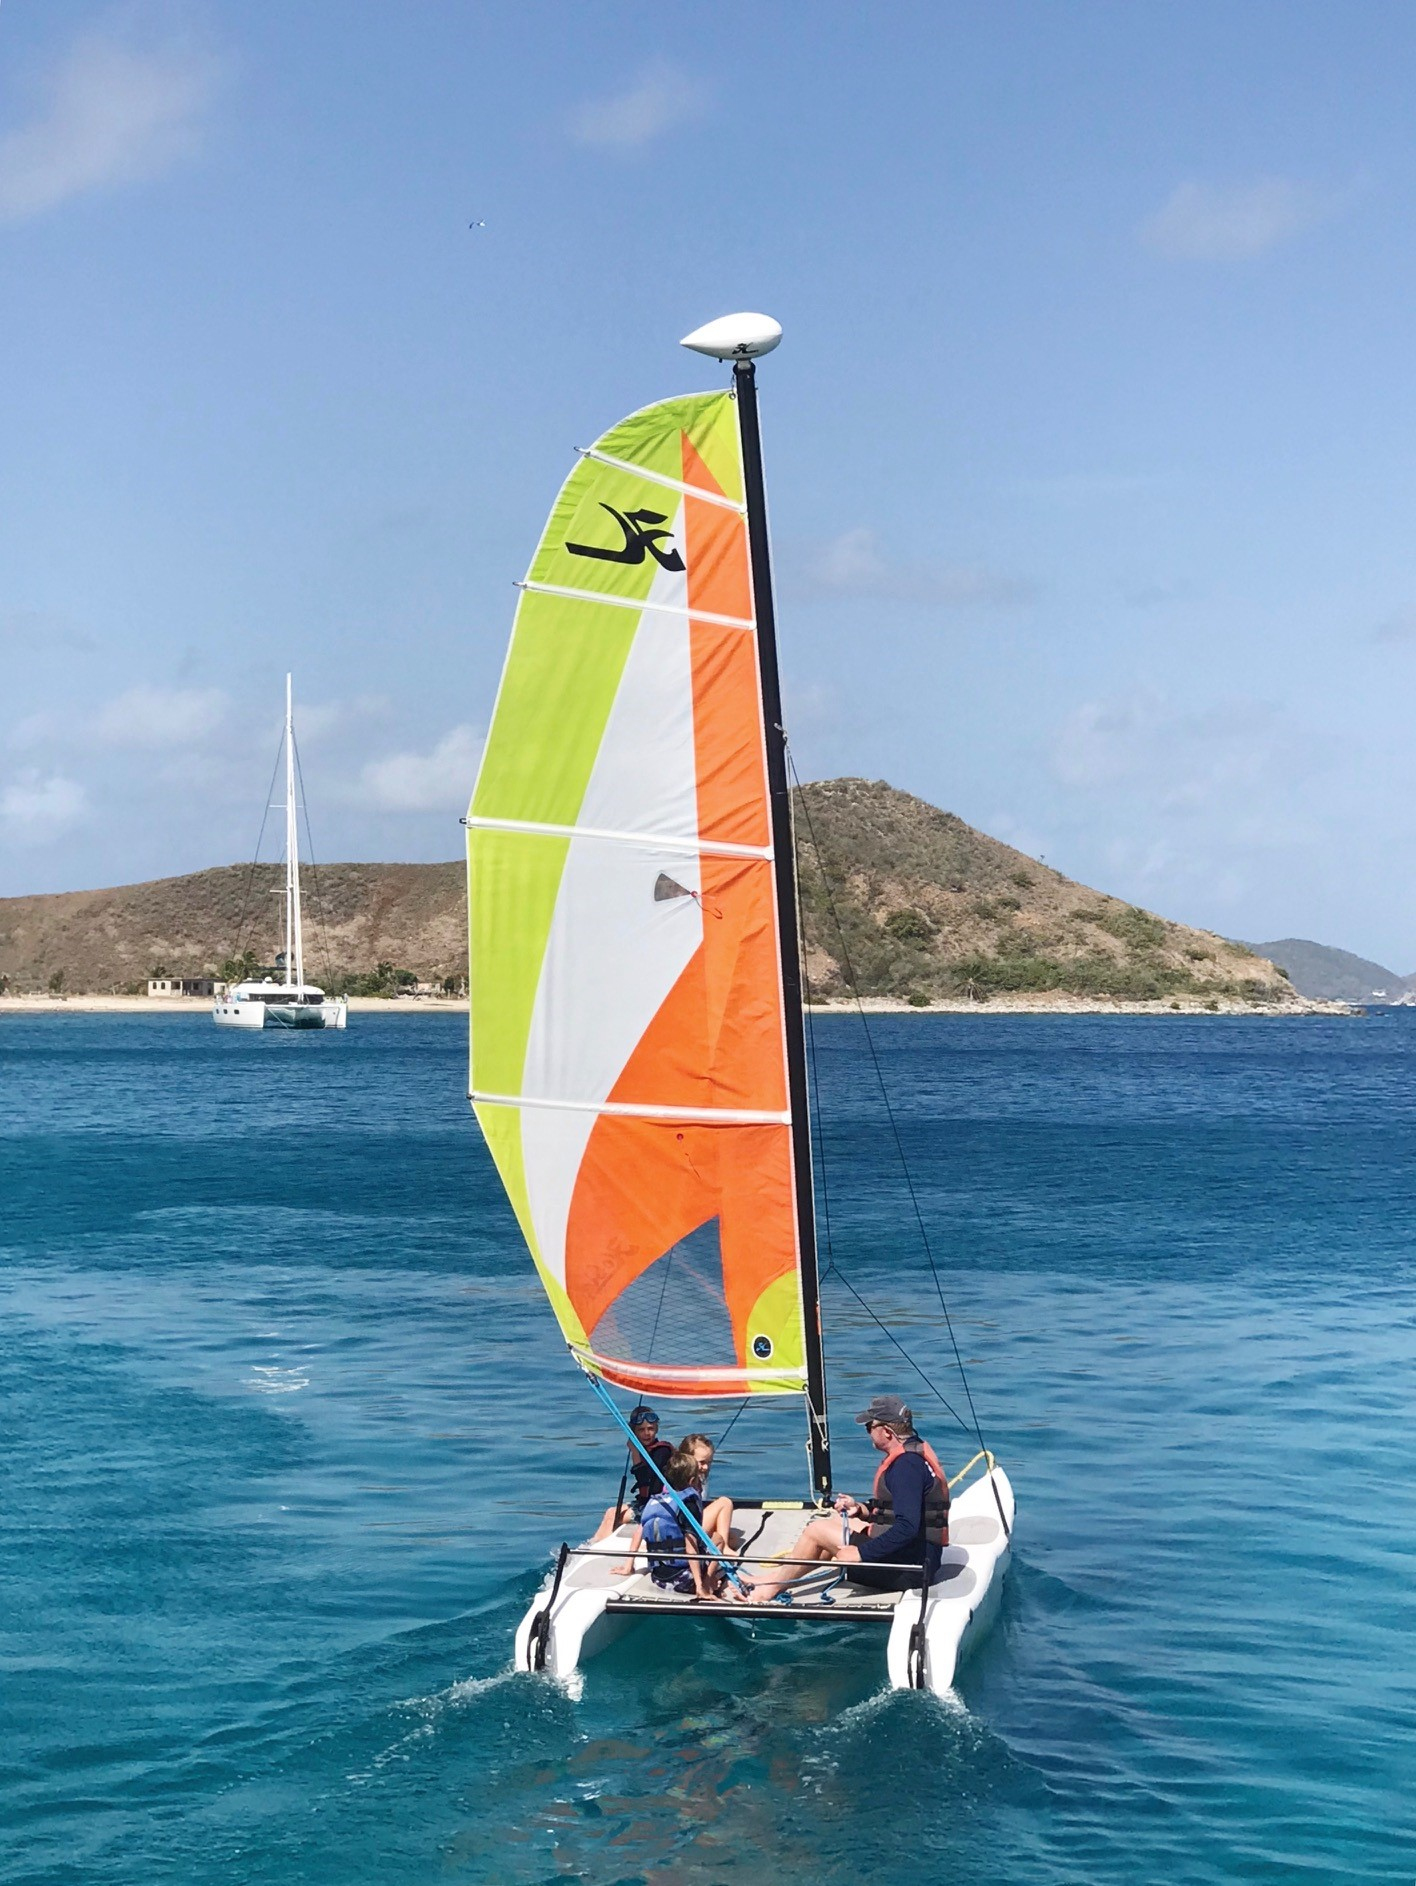 BVI Sailing - Taking the Hobie Cat out to explore